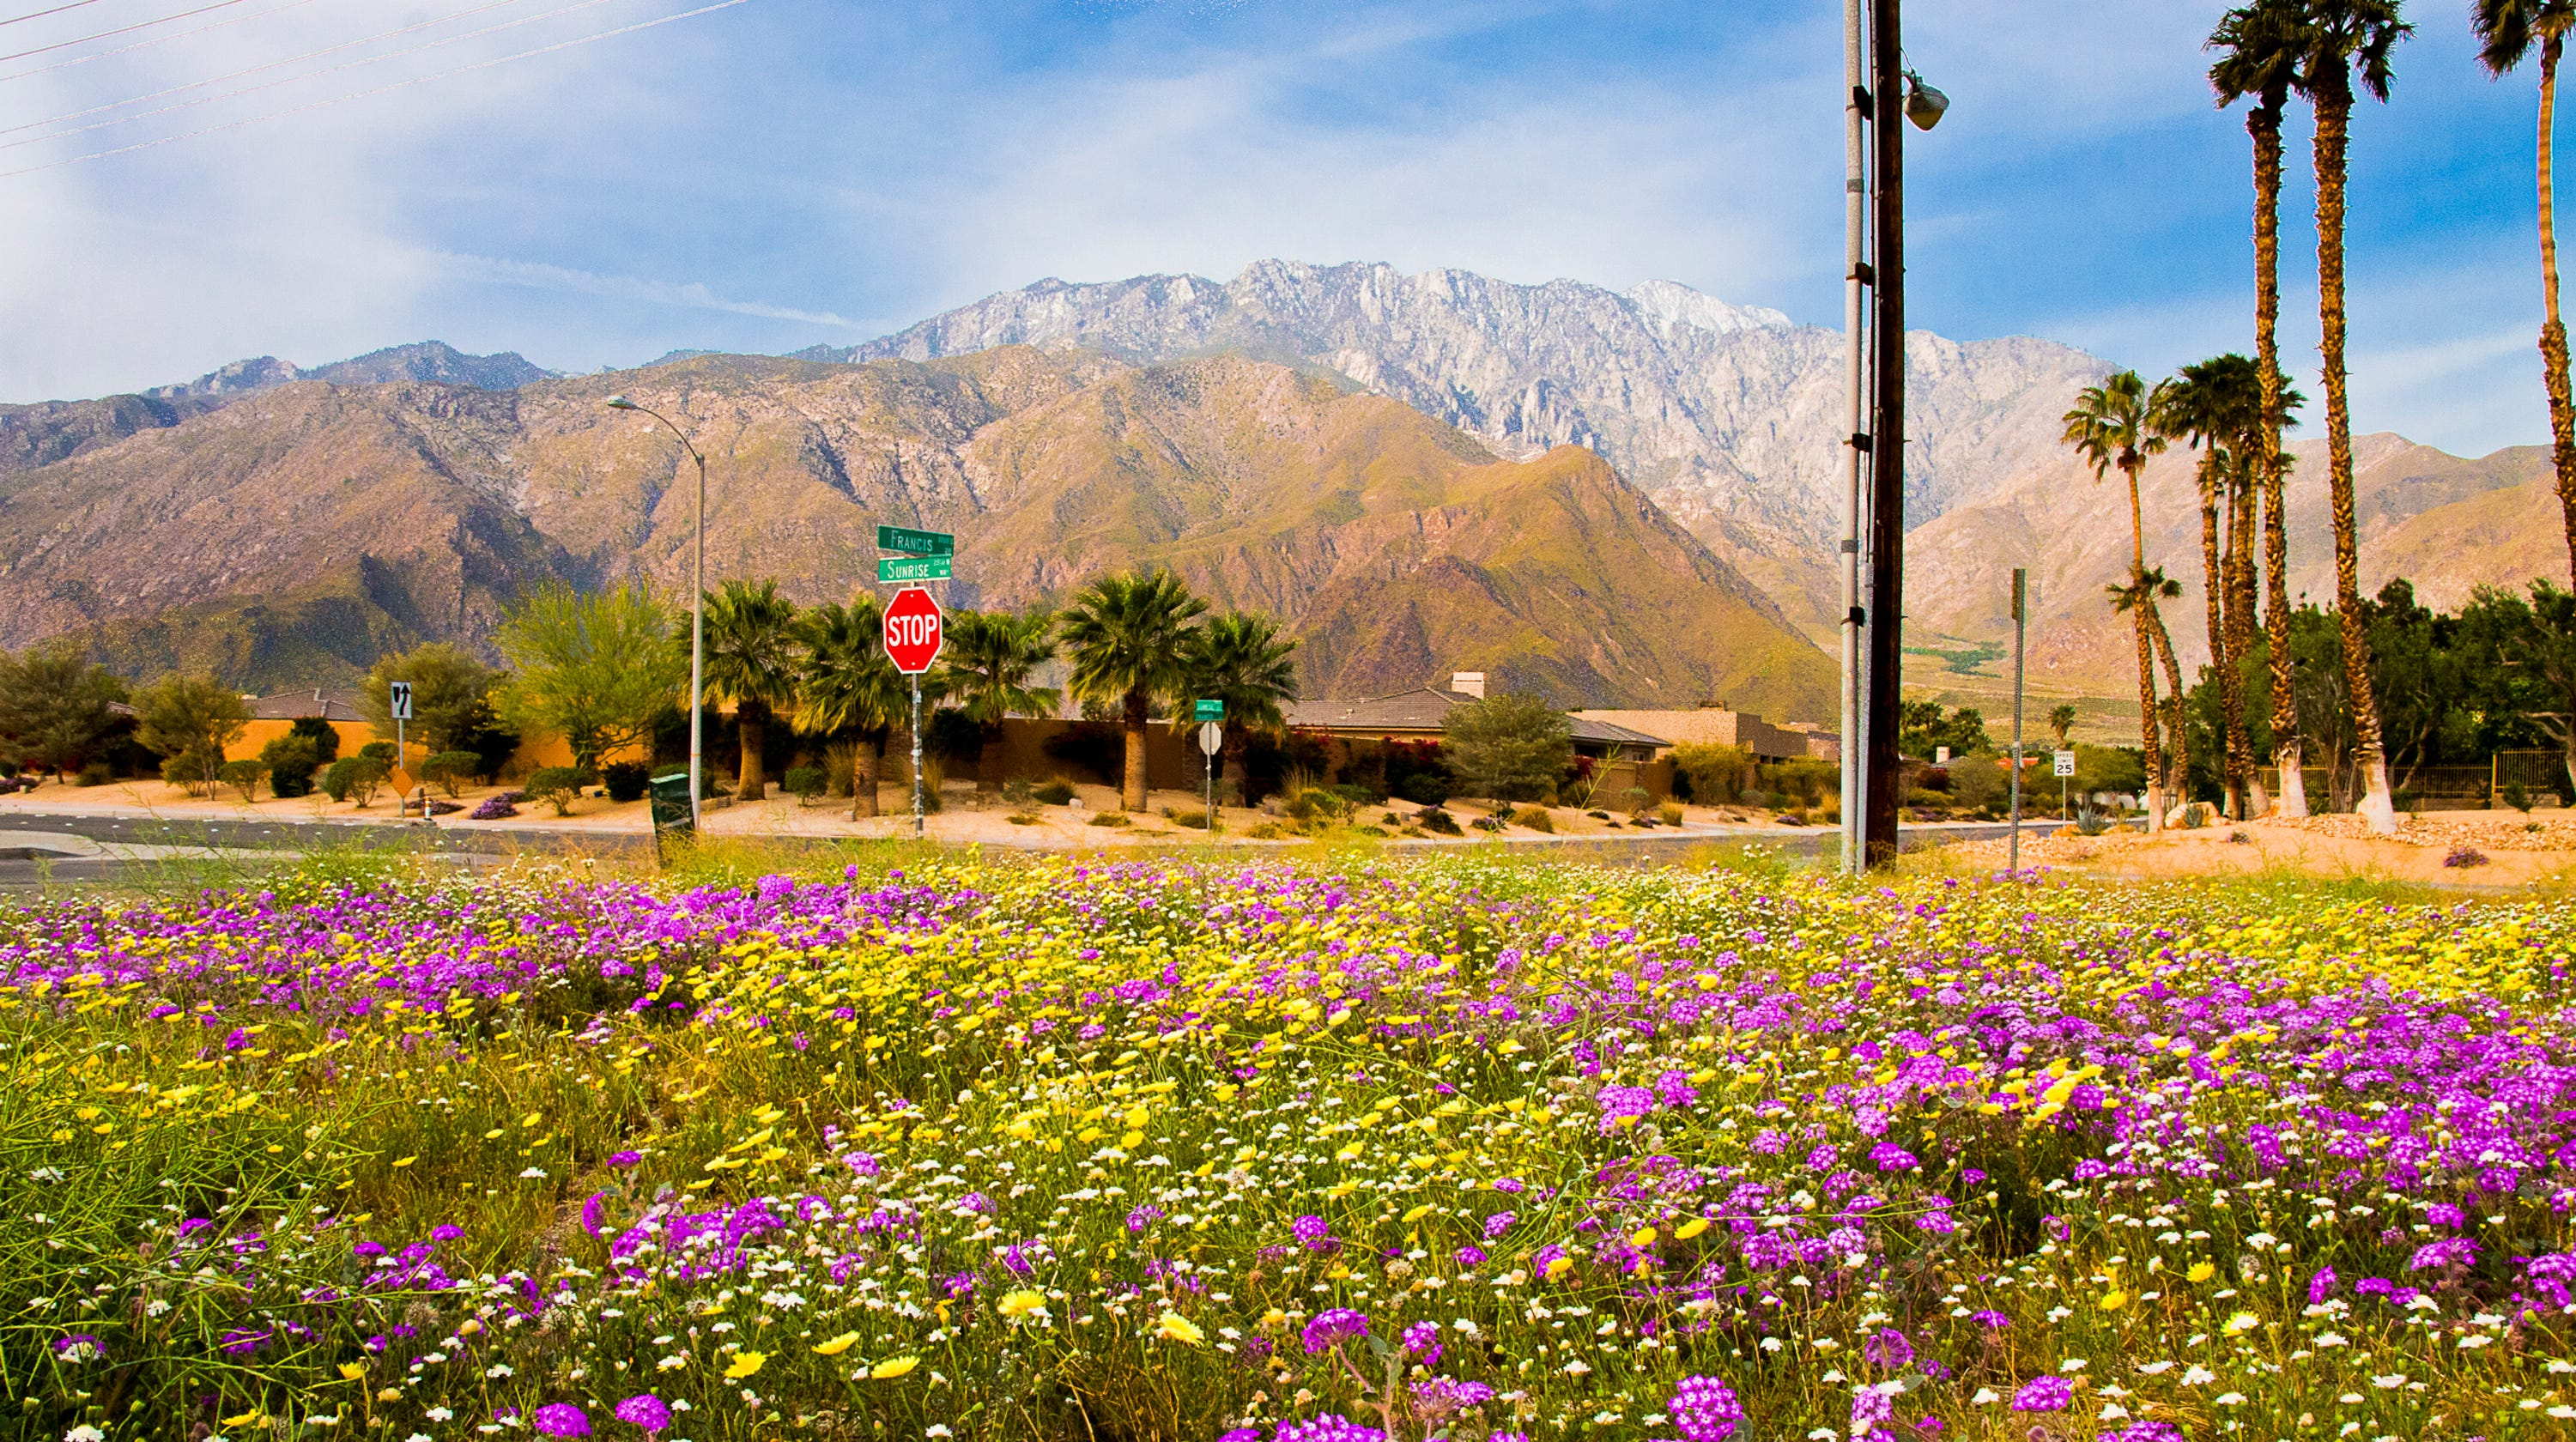 Heres How Palm Springs Areas Recent Rain Will Affect Wildflowers